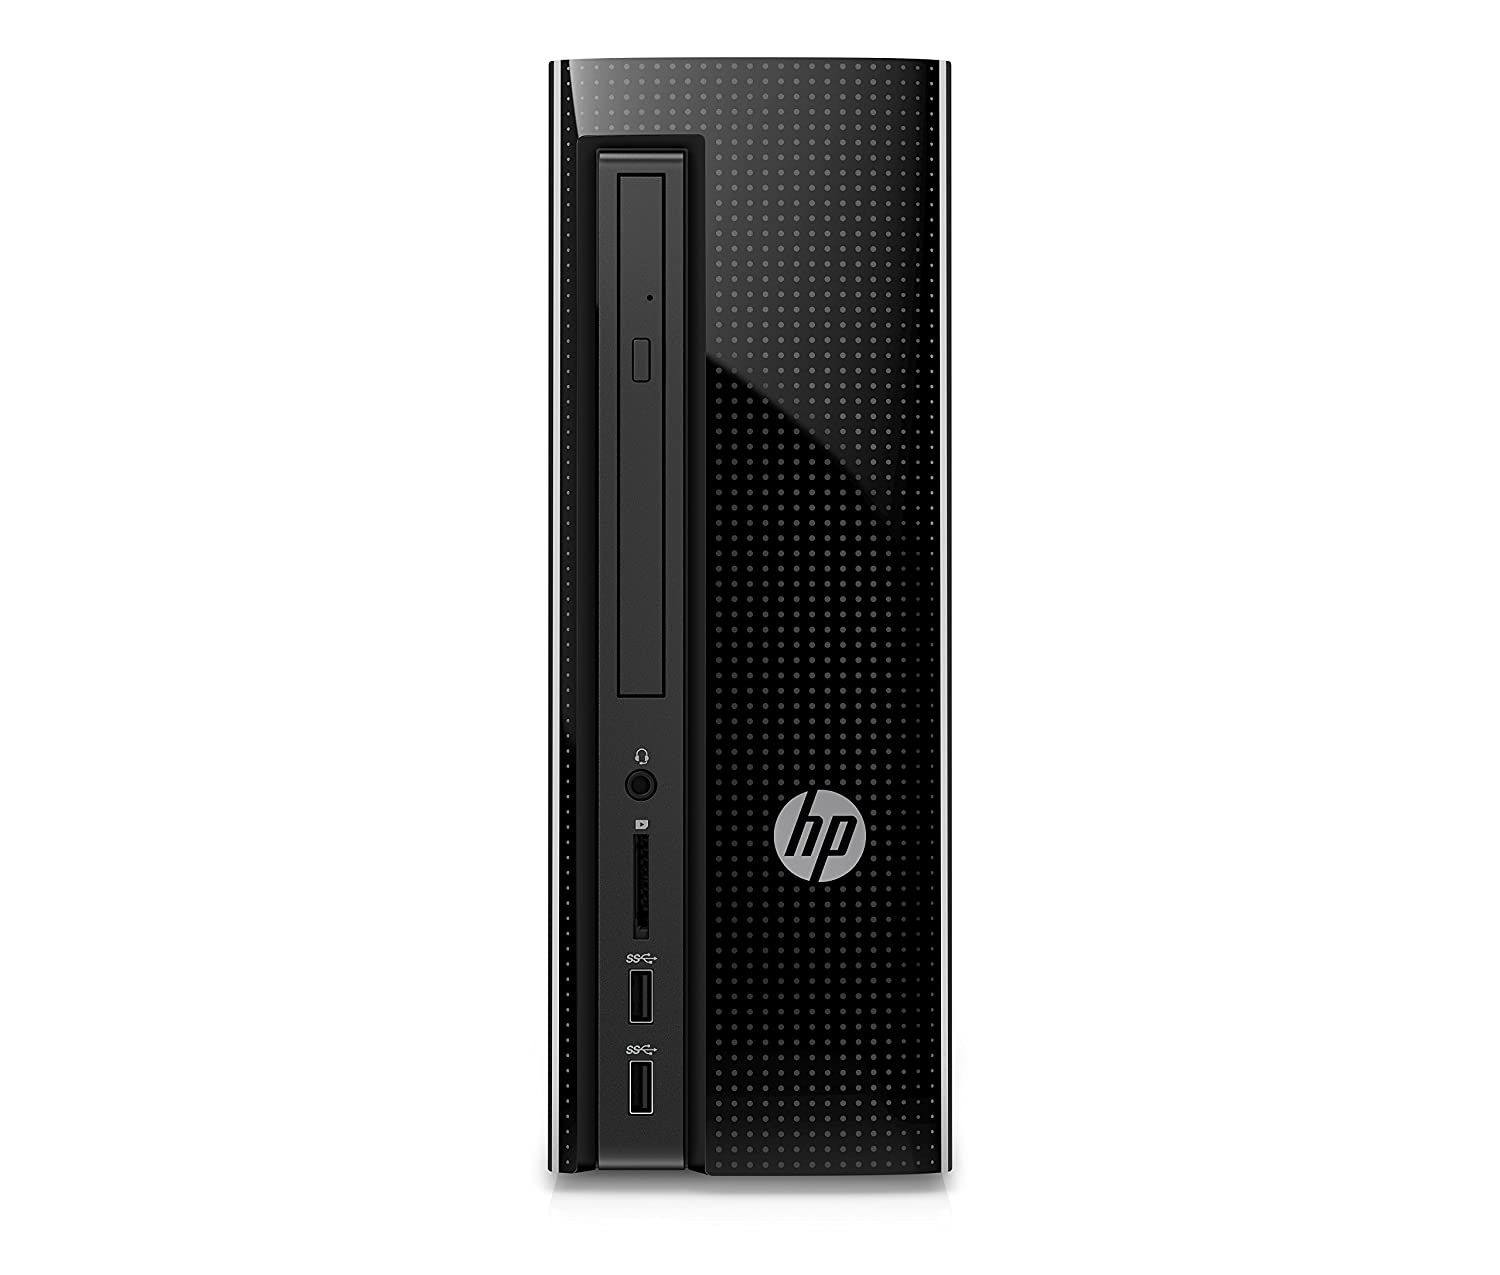 HP Slimline 260-p122nl Desktop PC de 8 GB, i3 – 6100T IPS, Disco Duro 1000 GB, Intel HD, Color Negro [Layout Italiano]